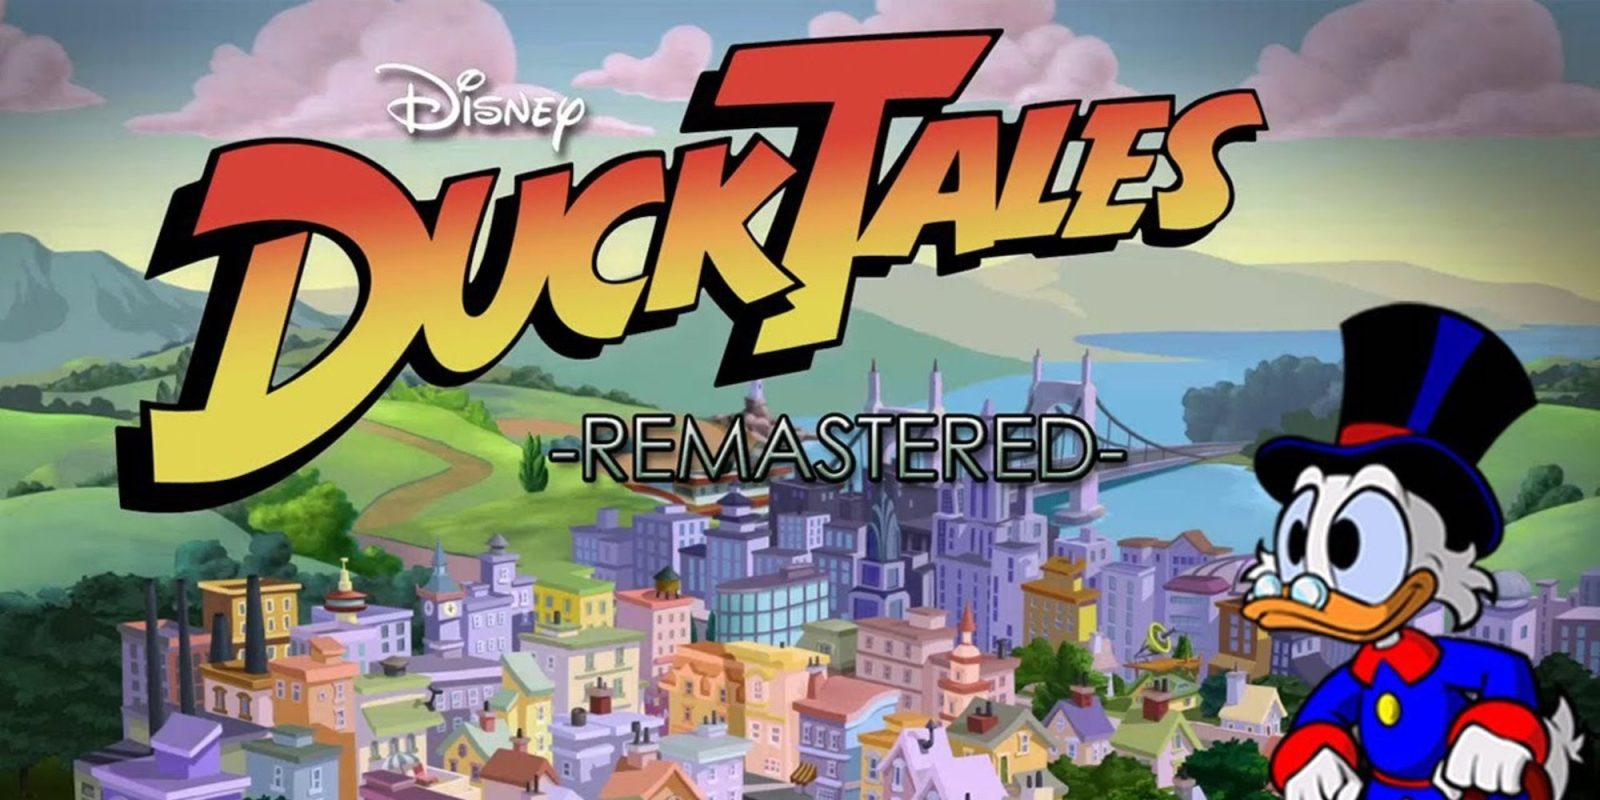 Download DuckTales Remastered before it gets pulled for good - 9to5Toys